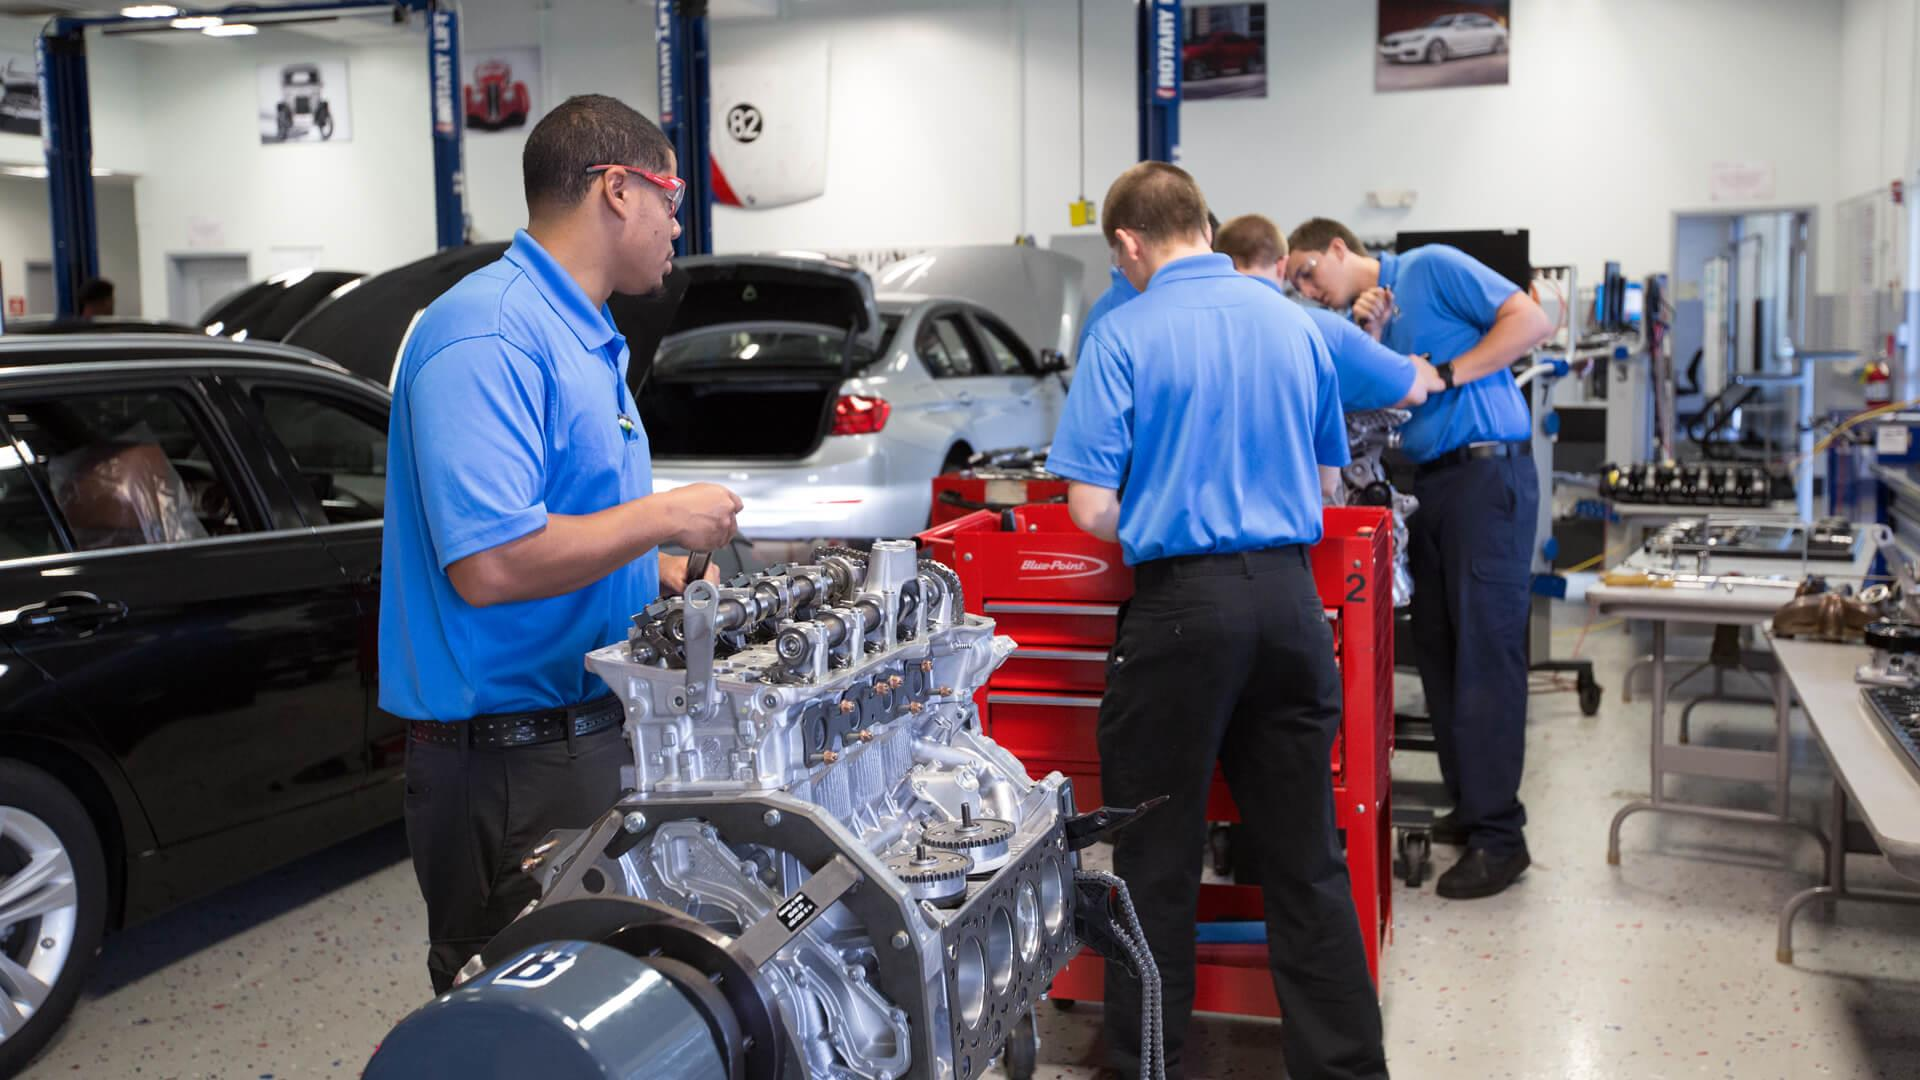 UTI students working on an engine in the BMW lab